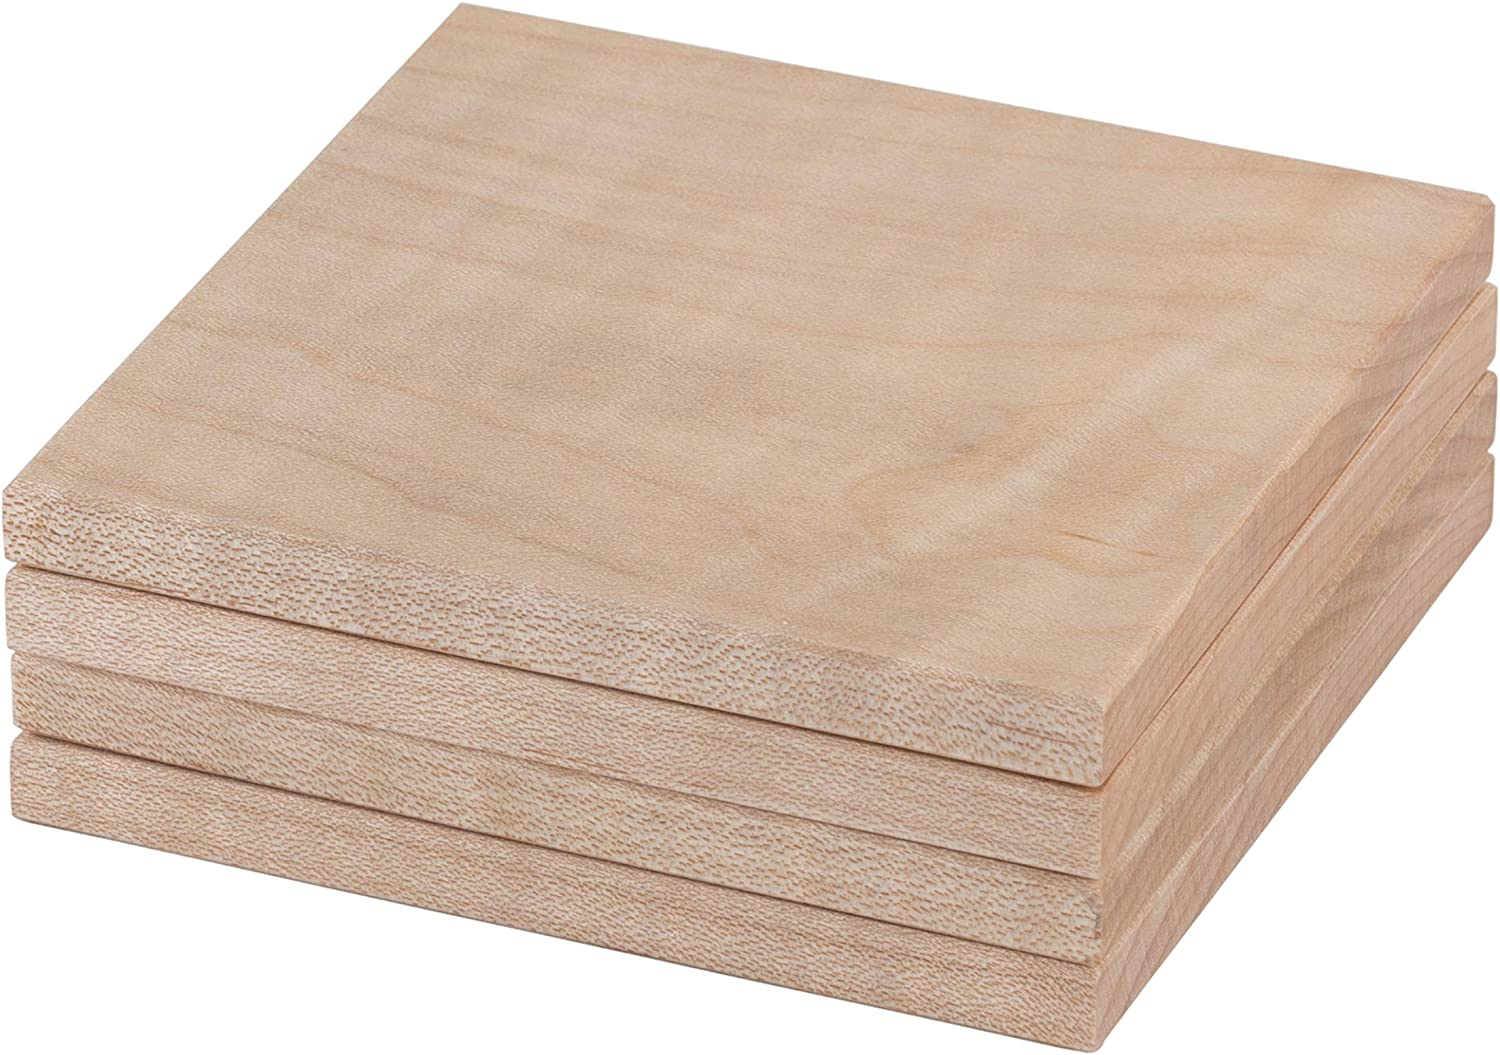 Whitmore Goods Solid Tampa Mall Coasters Chamfered 5 popular Maple